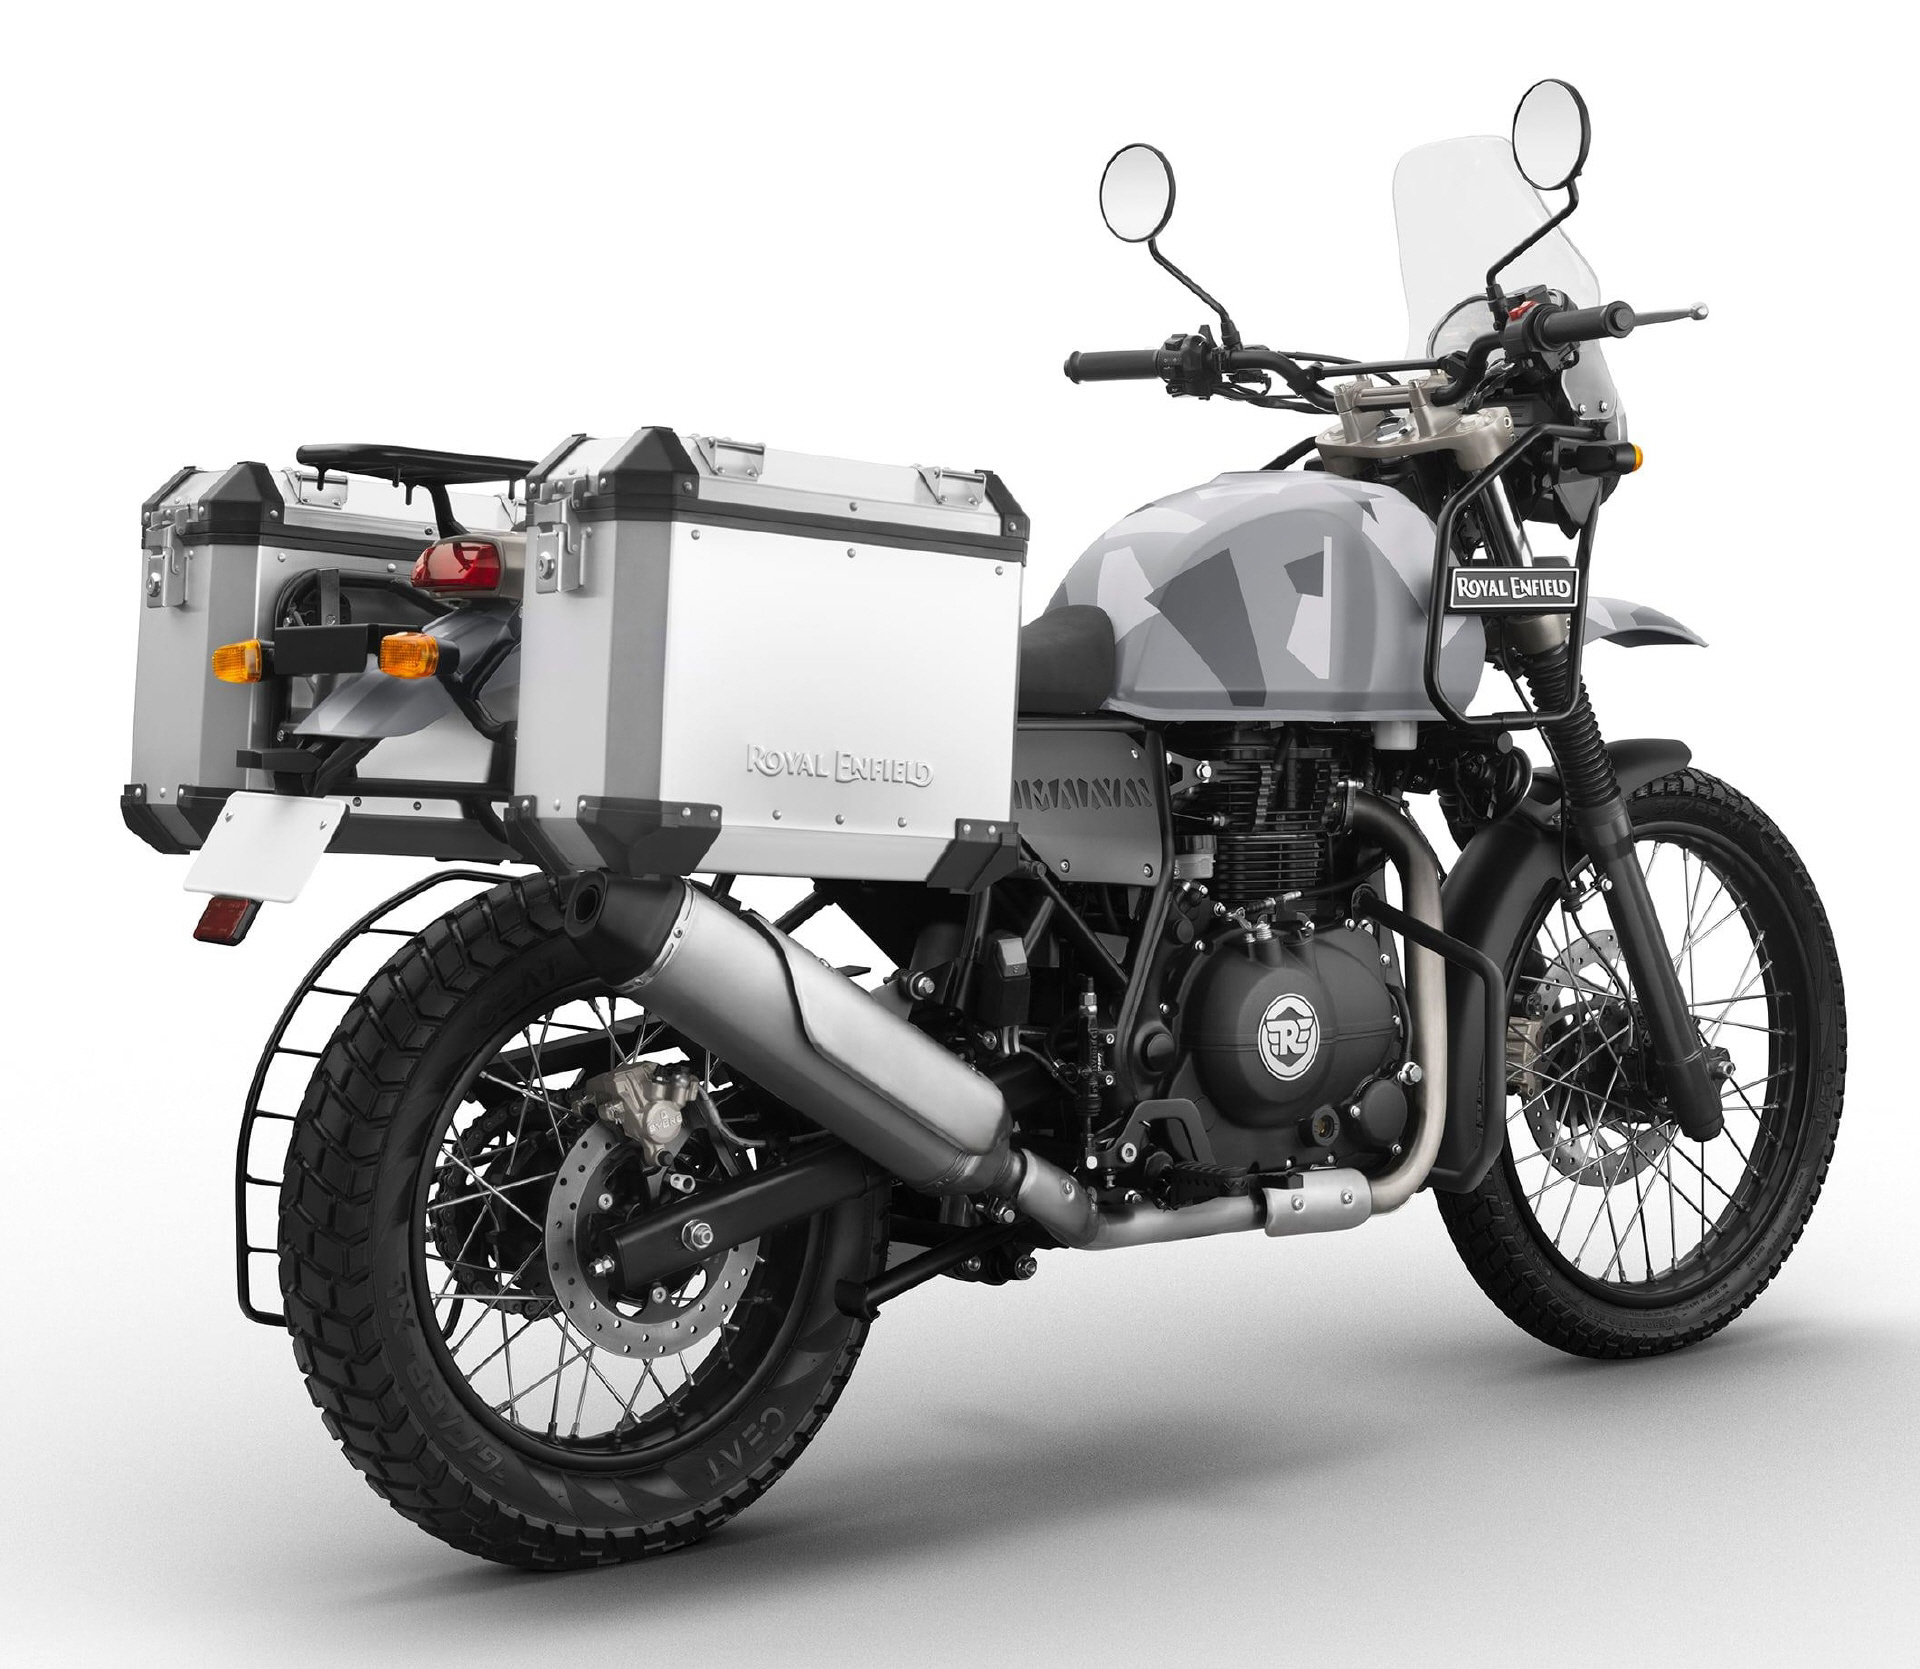 royalenfield_himalayan_sleet_03jpg